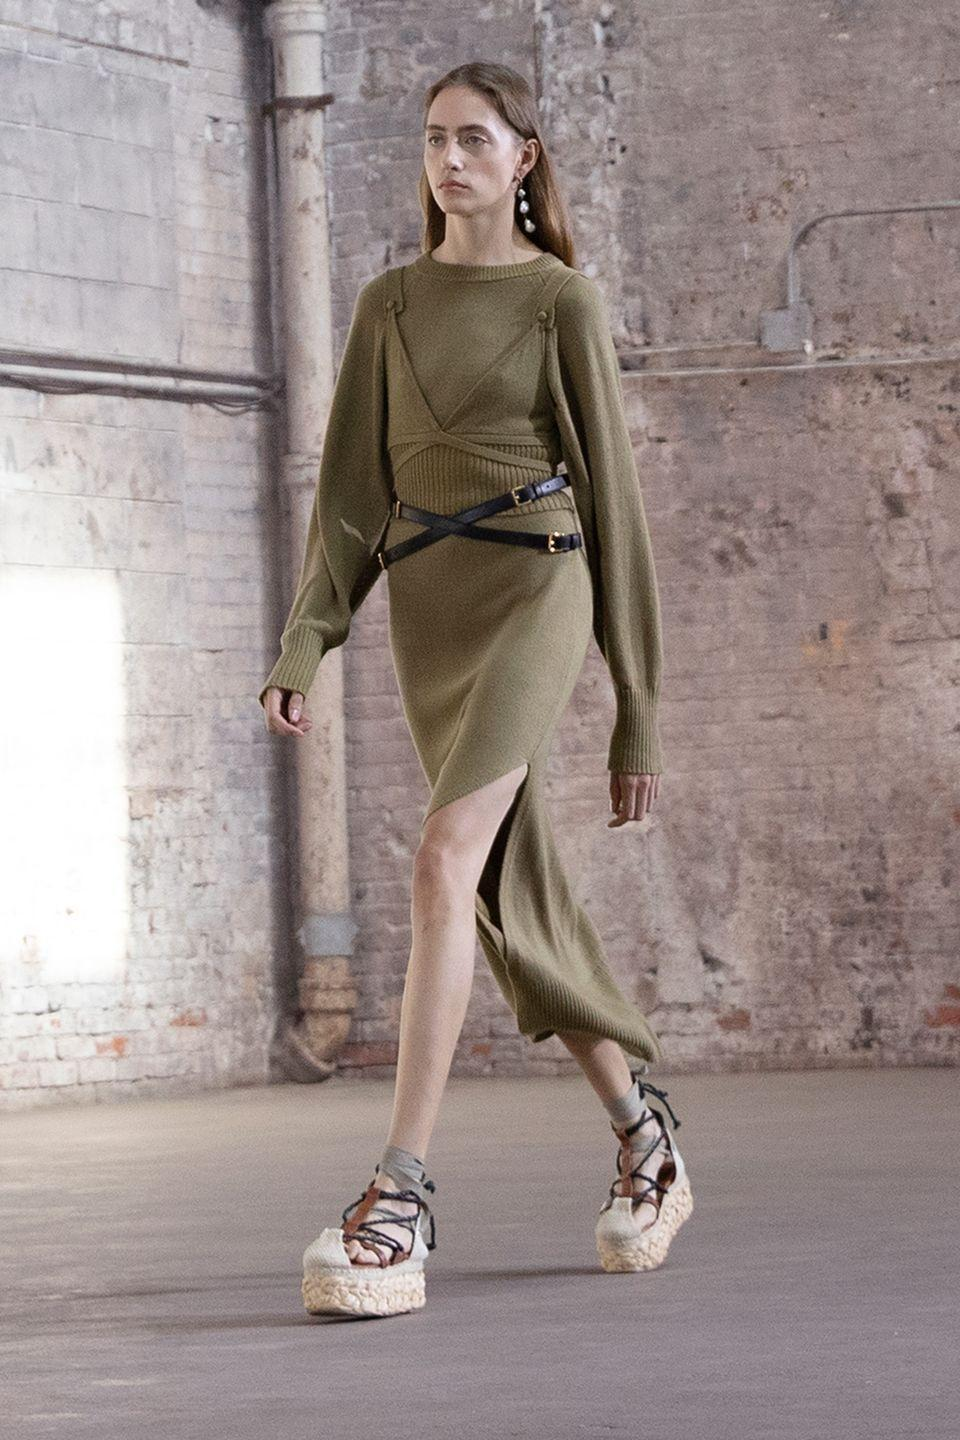 <p>Joseph Altuzarra was inspired by science fiction and real life when creating this collection, referencing <em>Dune</em> and the at-odds emotions he cycled through during the pandemic's various stages. The combination of both resulted in beautiful pieces that are loose and easy, but also pleasurable (the opposite of utilitarian pieces you suffer through wearing, these are delicious knits, soft leathers, and liquid-like silks you'll look forward to putting on). There was plenty of suiting, too, a staple for the brand, but the styles were softer than previous seasons, oversized and boxy with an '80s bend. This Altuzarra is still sexy and cool, but altogether warmer, the work of a man who spent the preceding months realizing how much joy and comfort can be found from the simple things. <em>—Leah Melby Clinton</em></p>